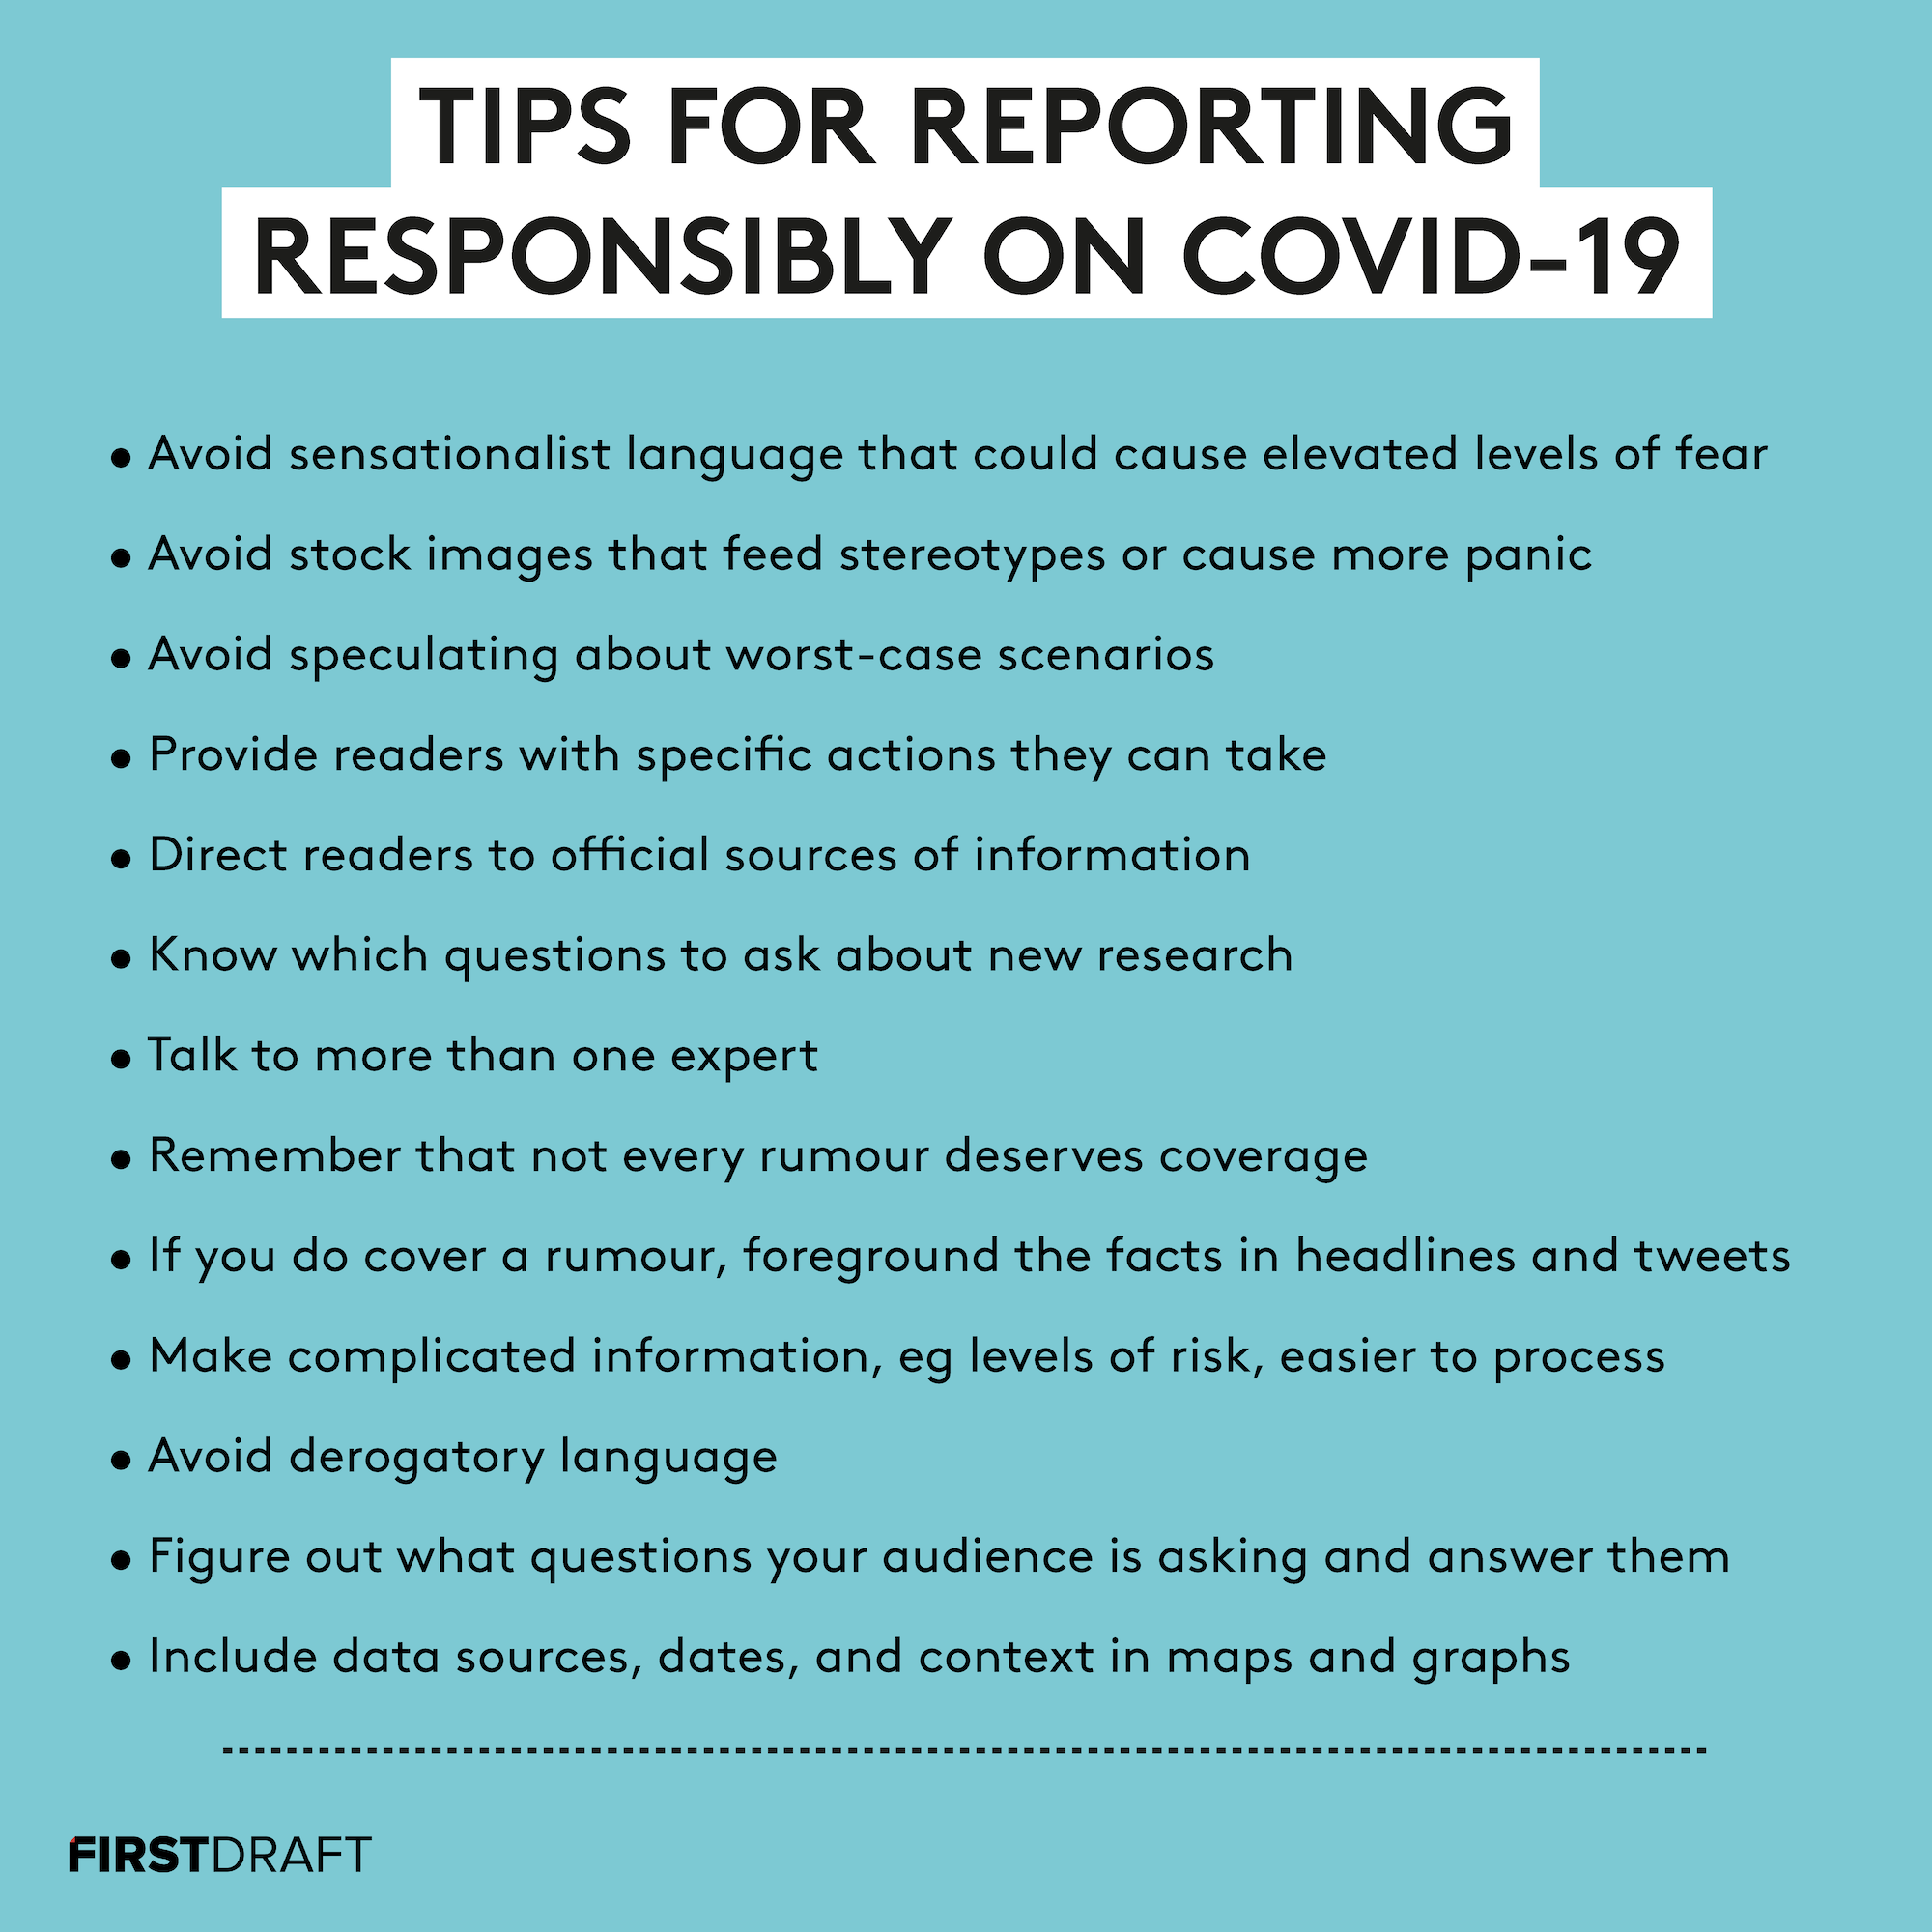 Tips For Reporting On Covid-19 And Slowing The Spread Of